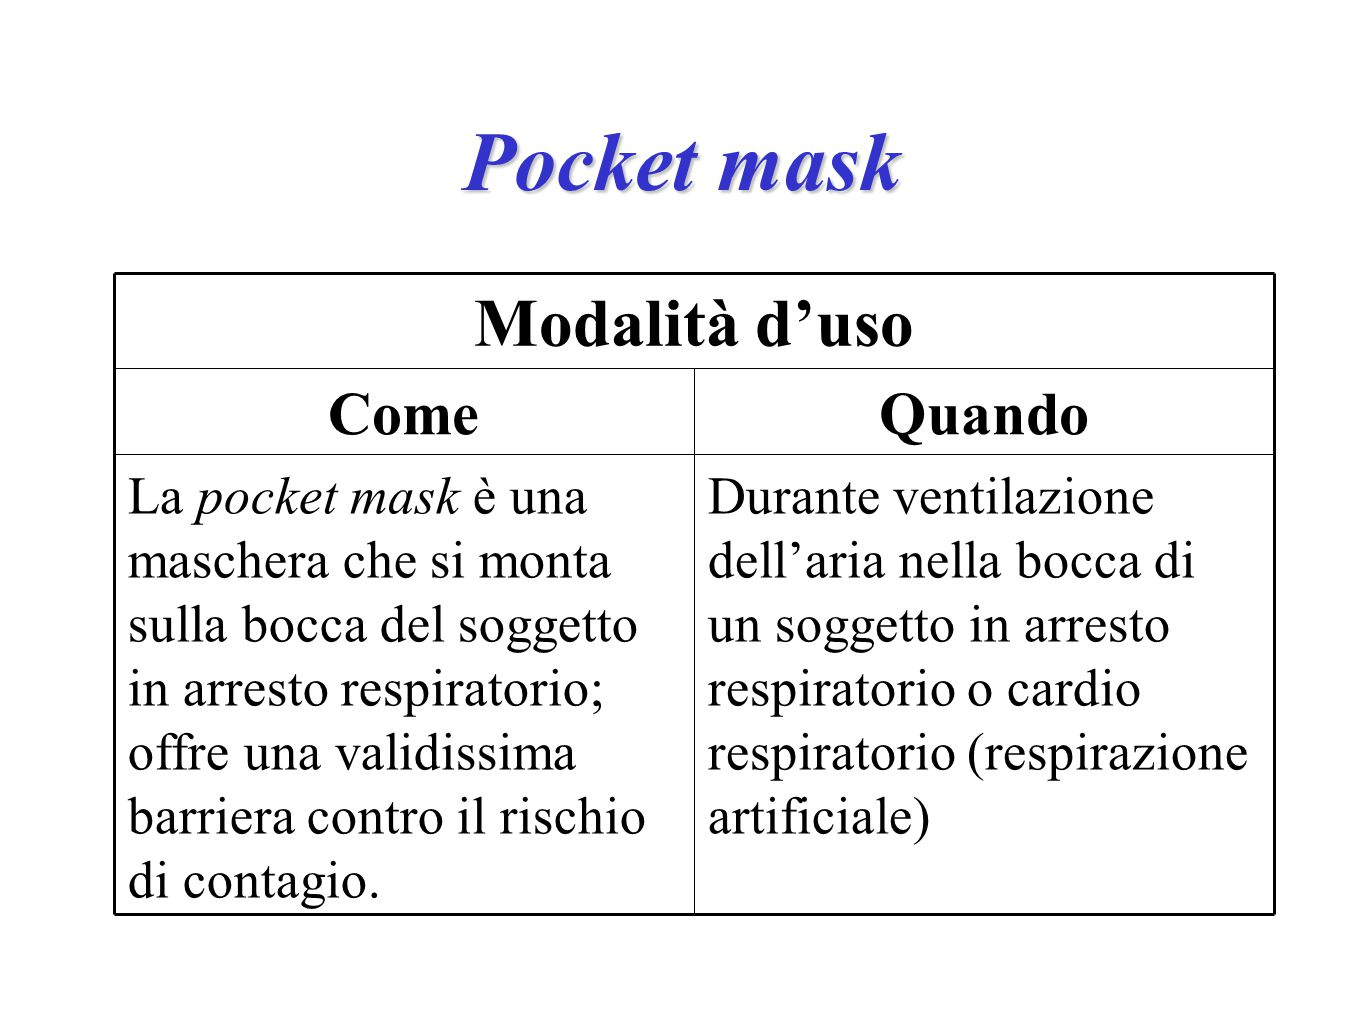 Pocket mask Modalità d'uso Quando Come